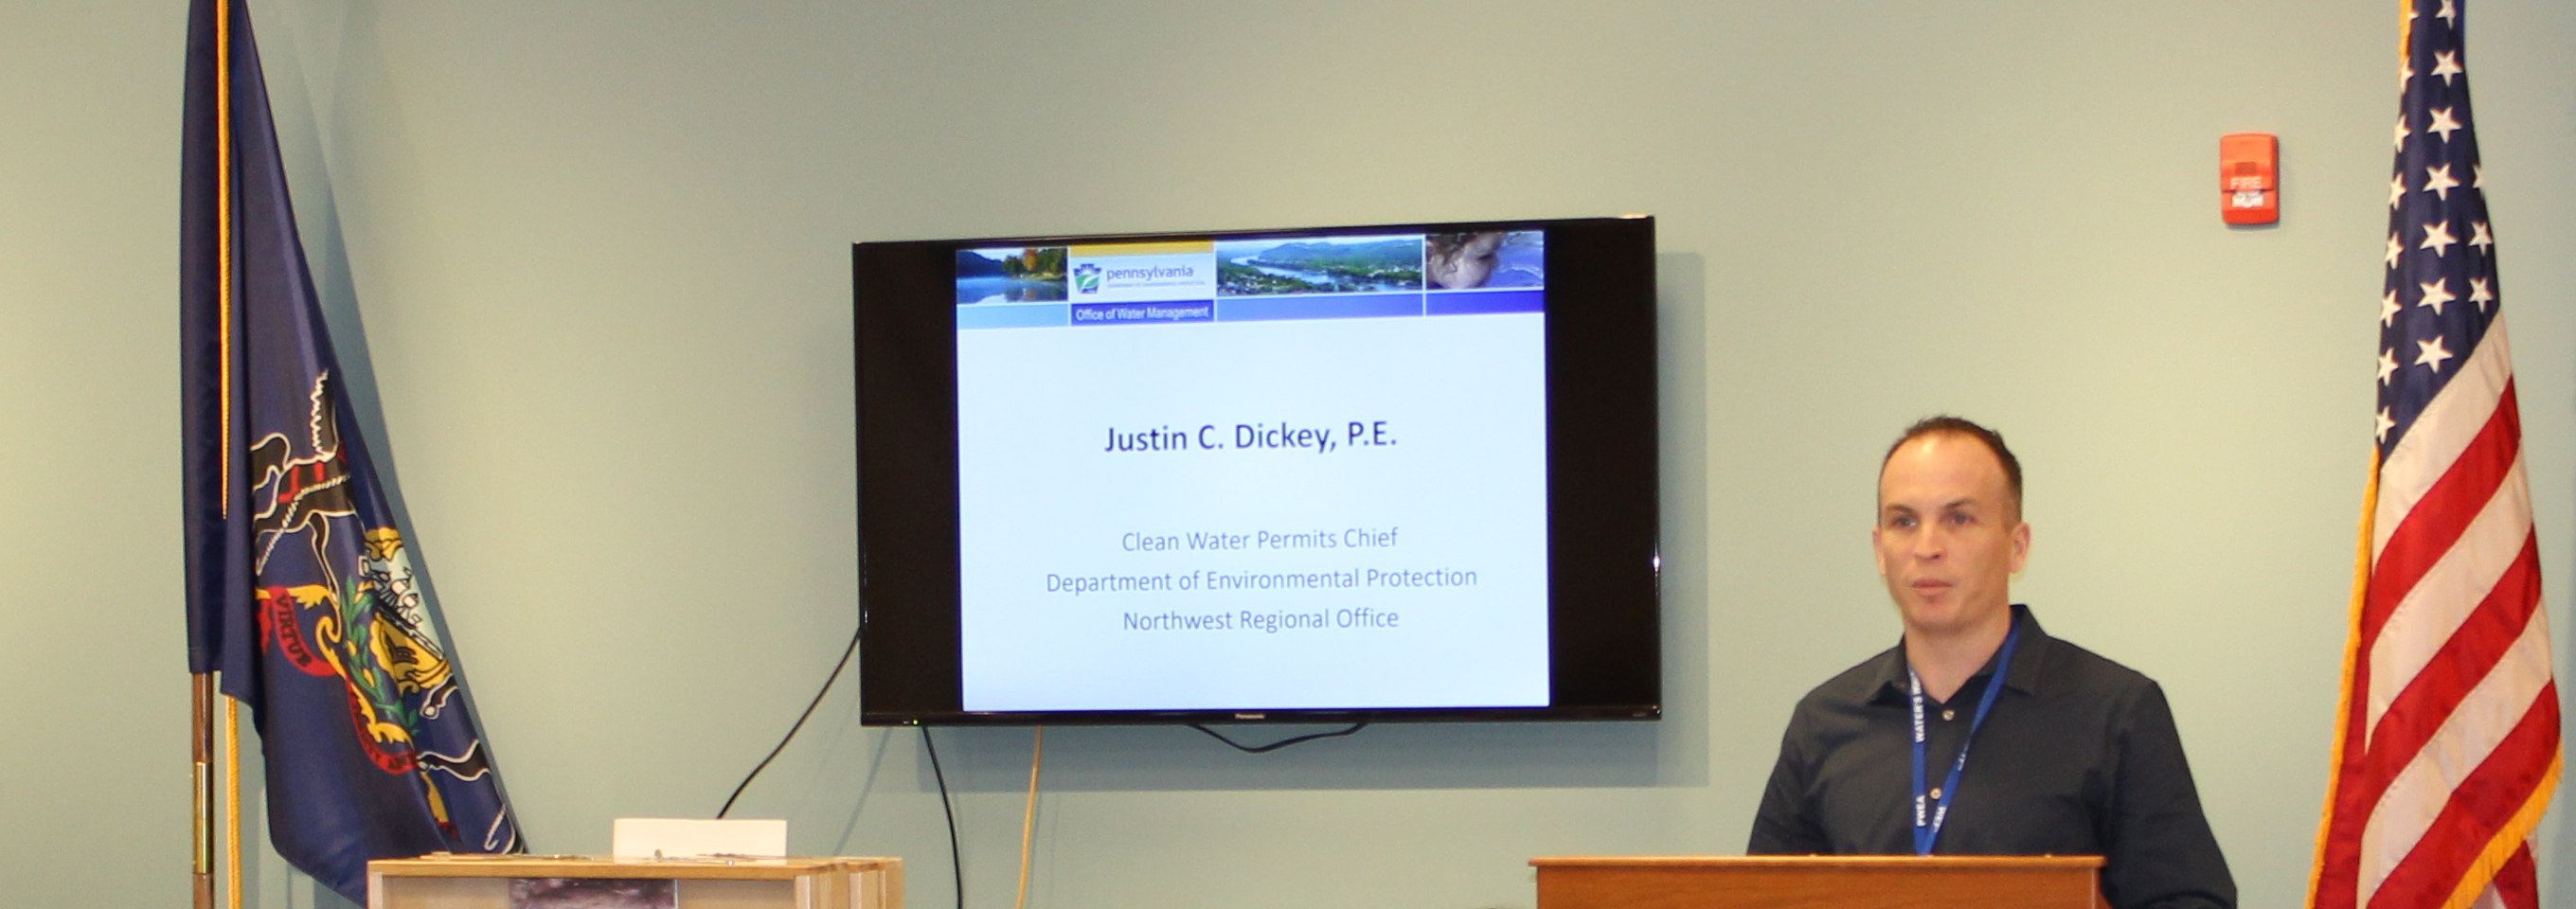 Justin Dickey at Engineering Day